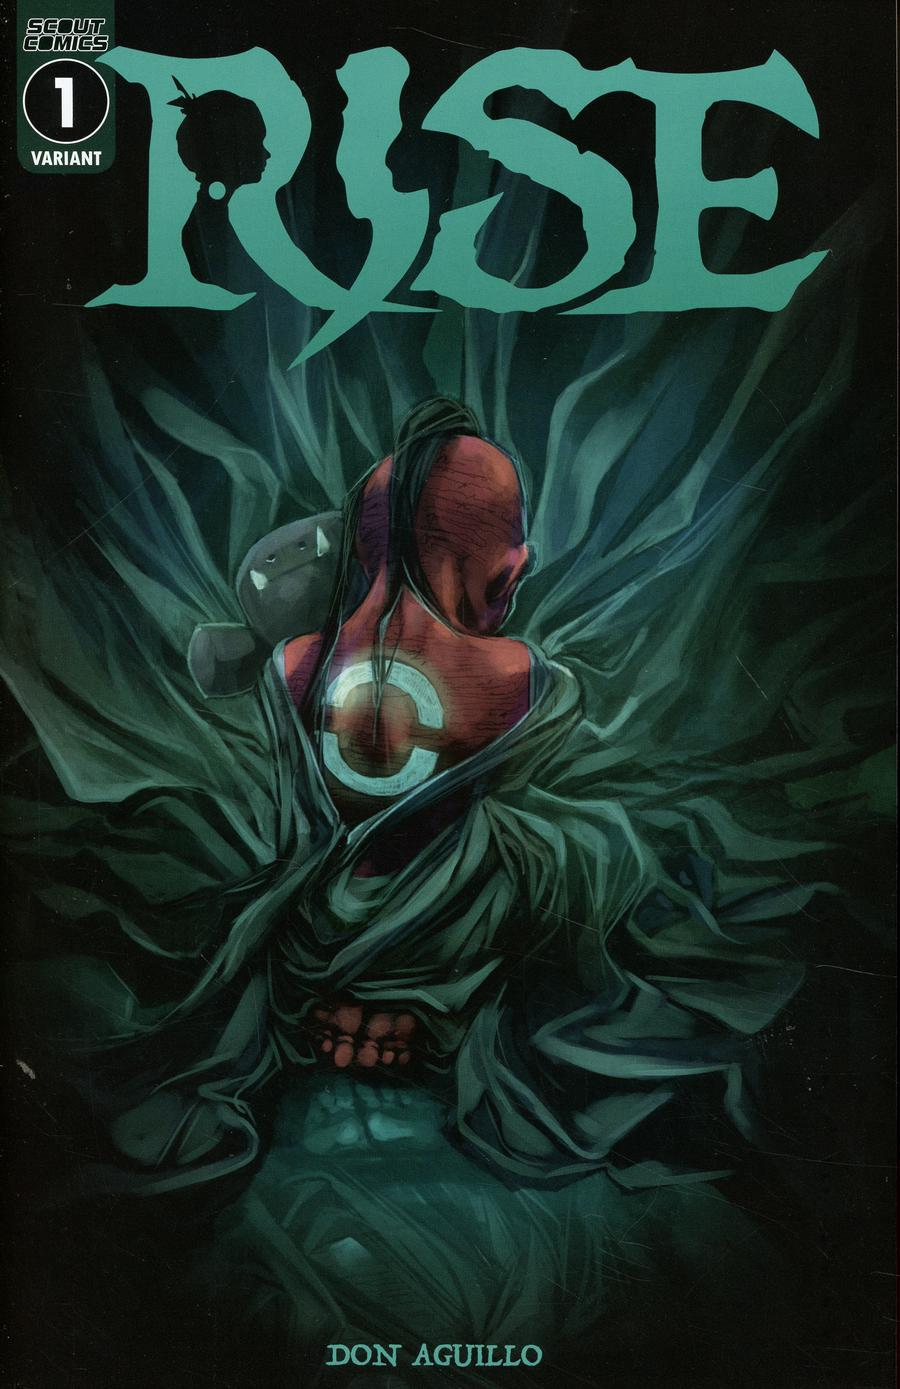 Rise (Scout Comics) #1 Cover B Variant Don Aguillo Cover